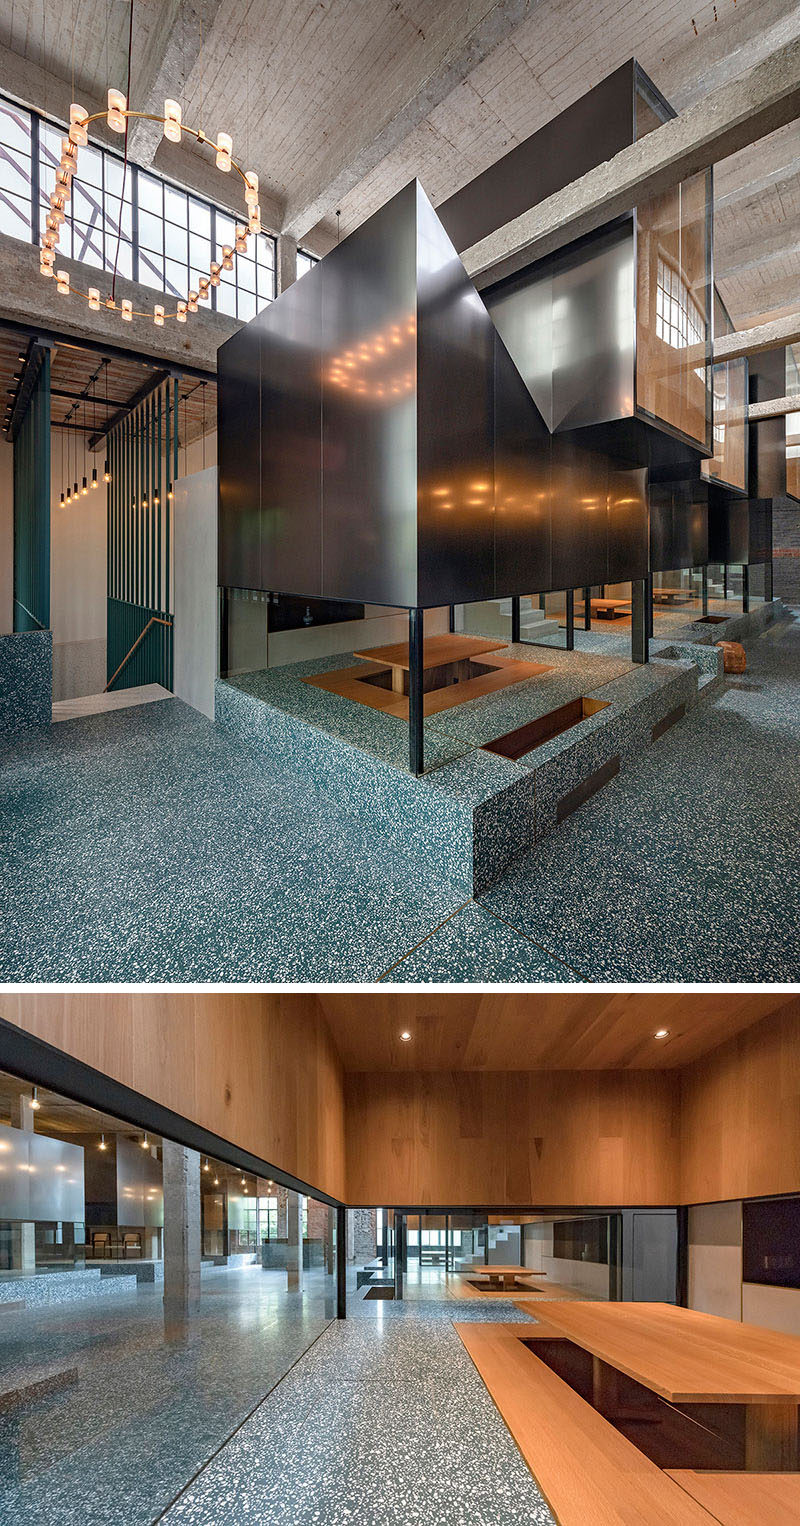 This modern teahouse has stacked rooms with smoked oak interiors, allowing small groups to have privacy to enjoy the ritual of tea. #ModernTeahouse #Architecture